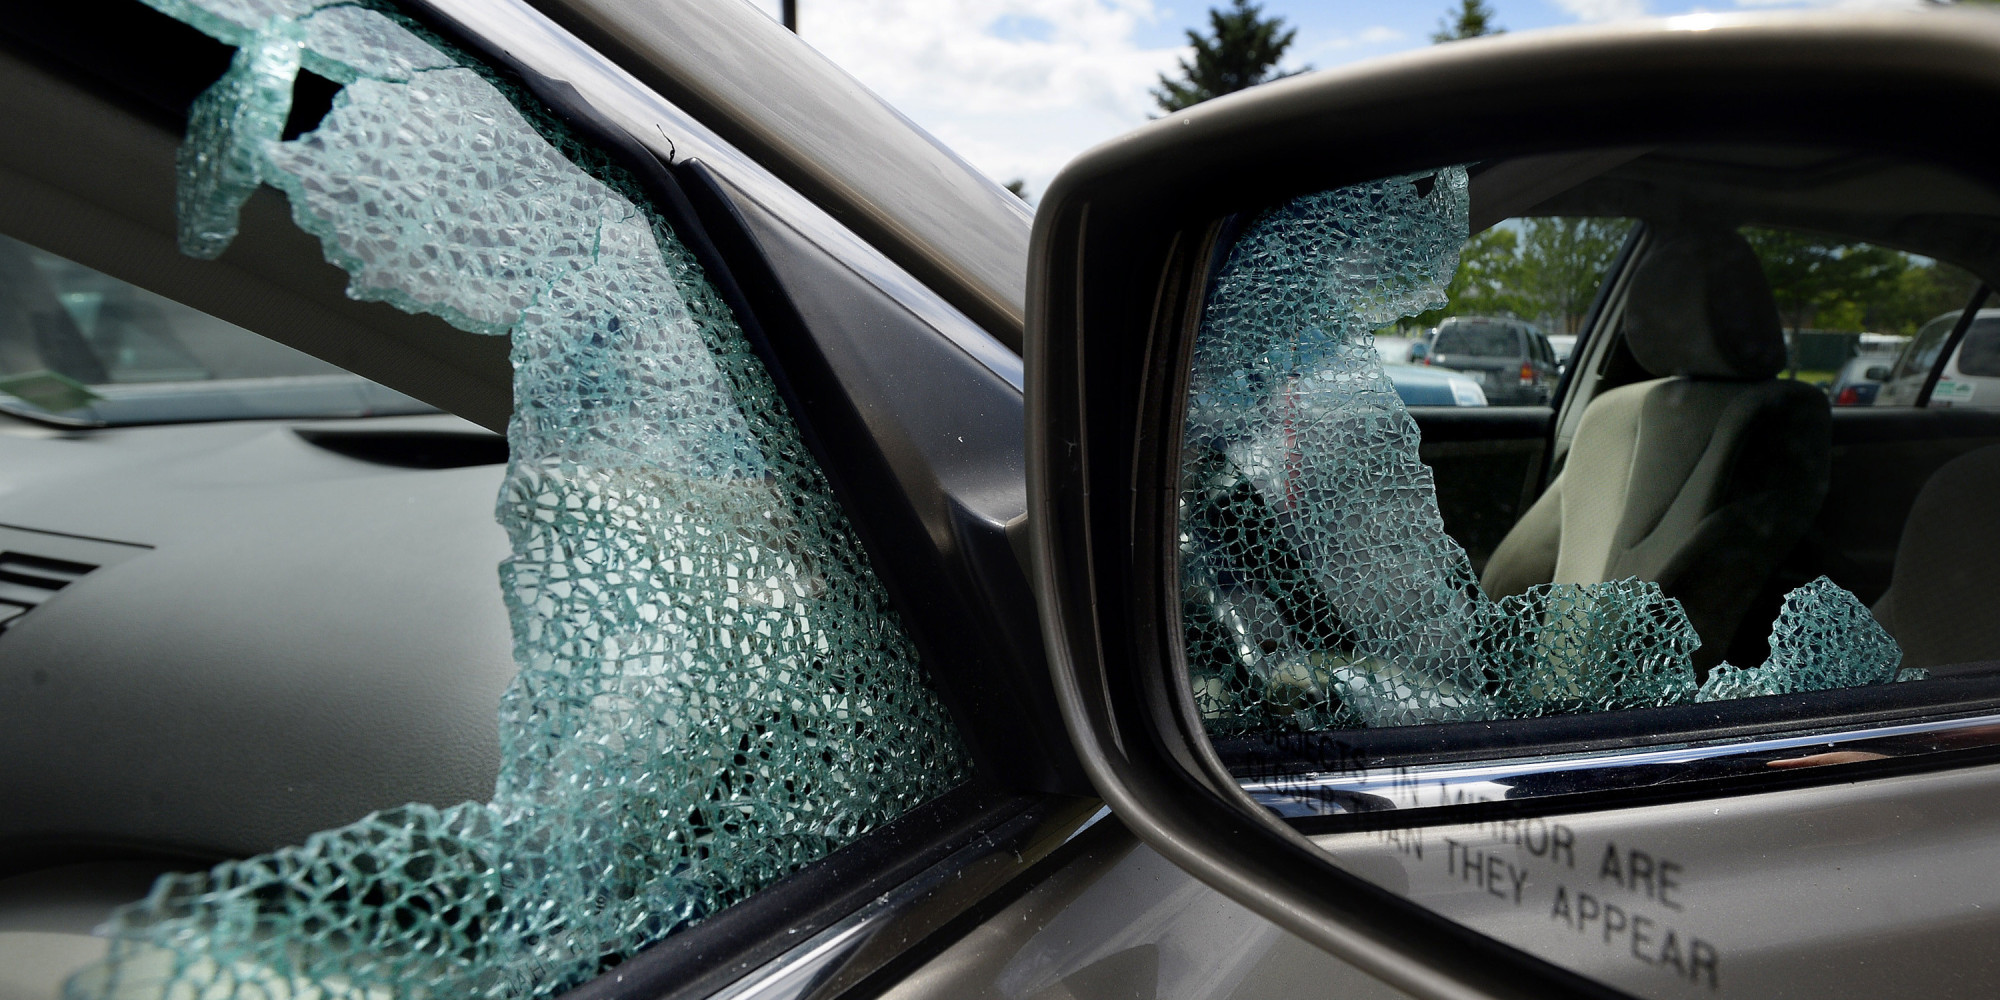 Broken Car Window: More Than 350 Burnaby Cars Vandalized In Smash-And-Grab Spree